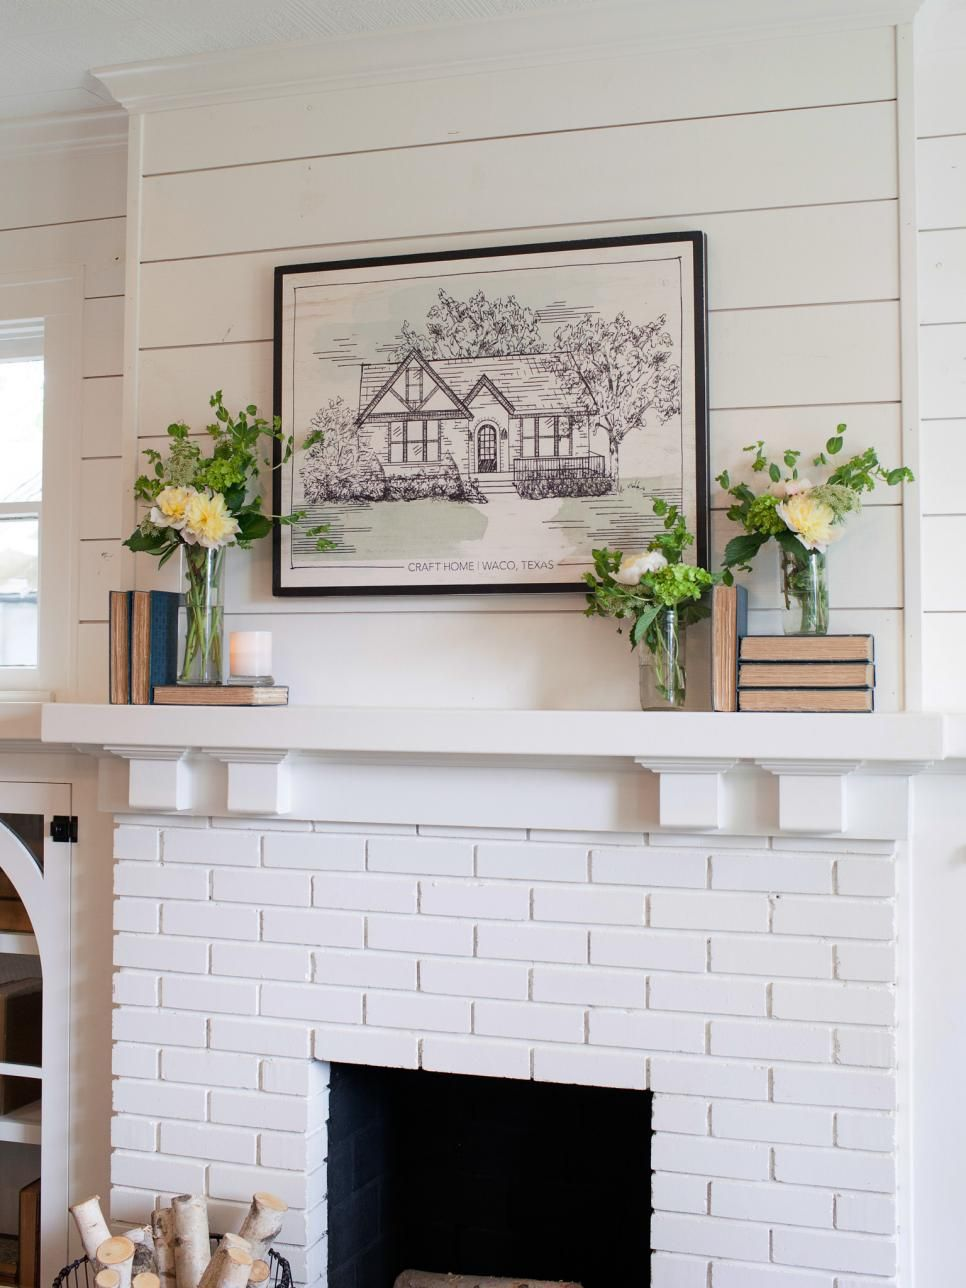 Brick Fireplace Wood Mantel Fixer Upper Brick Cottage For Baylor Grads Fixer Upper Brick